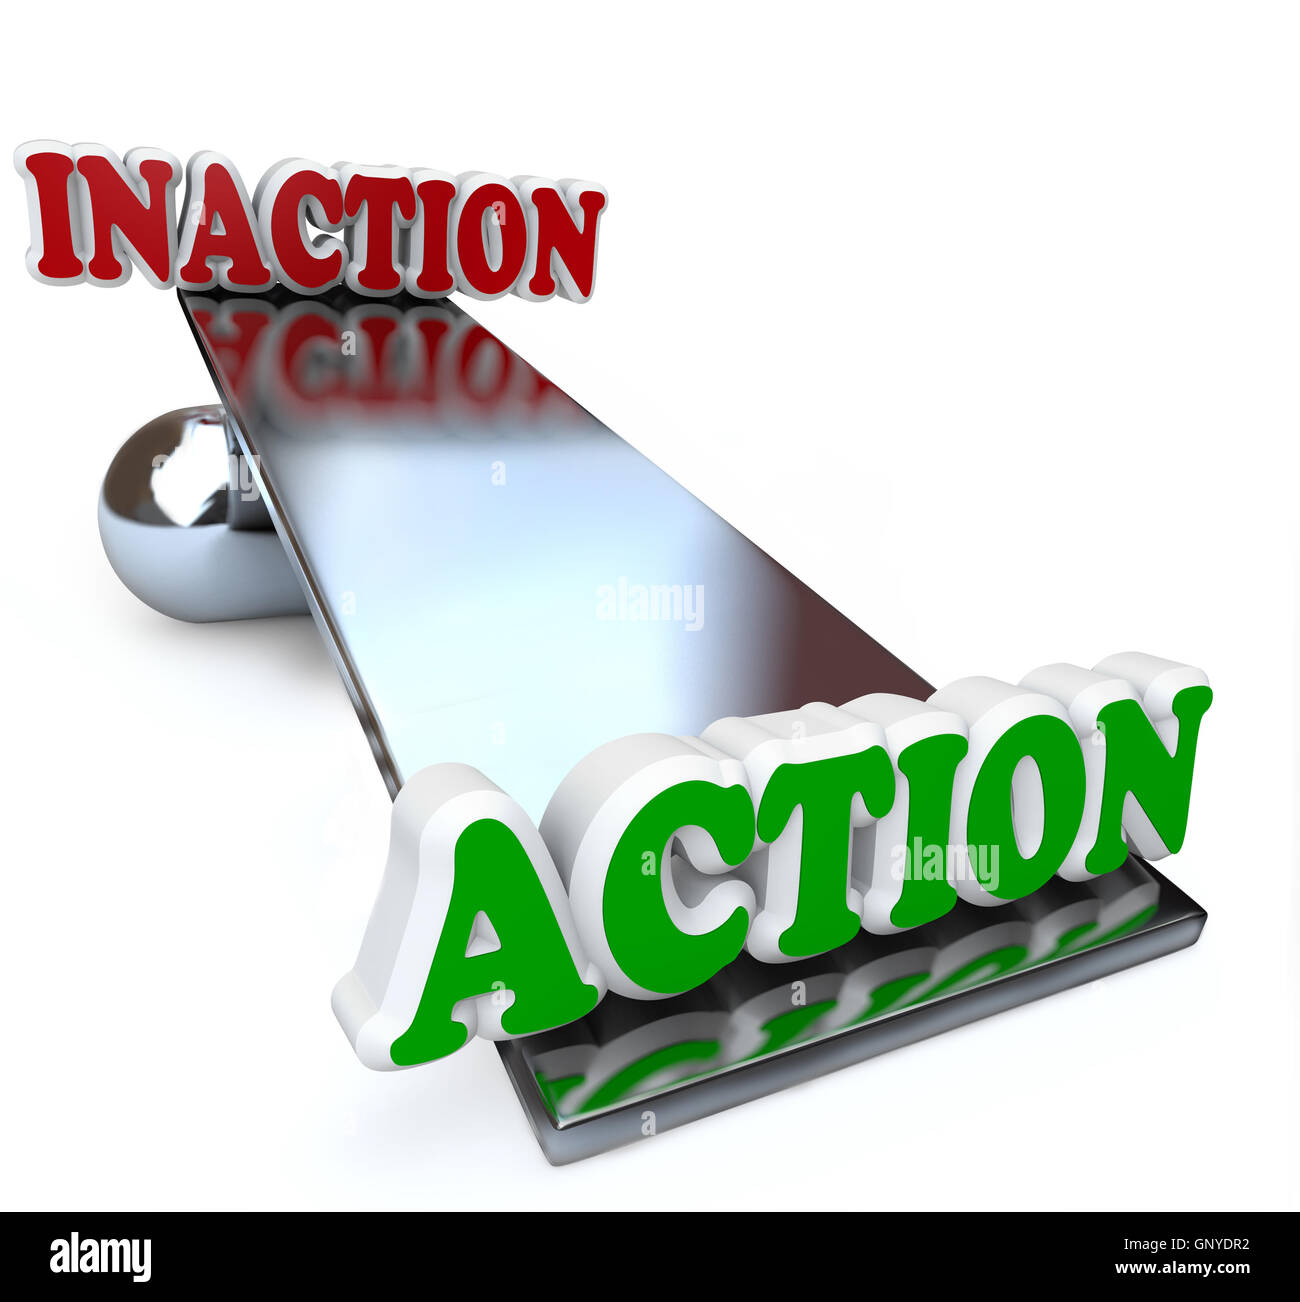 Action Vs Inaction Words on Balance Comparison - Stock Image